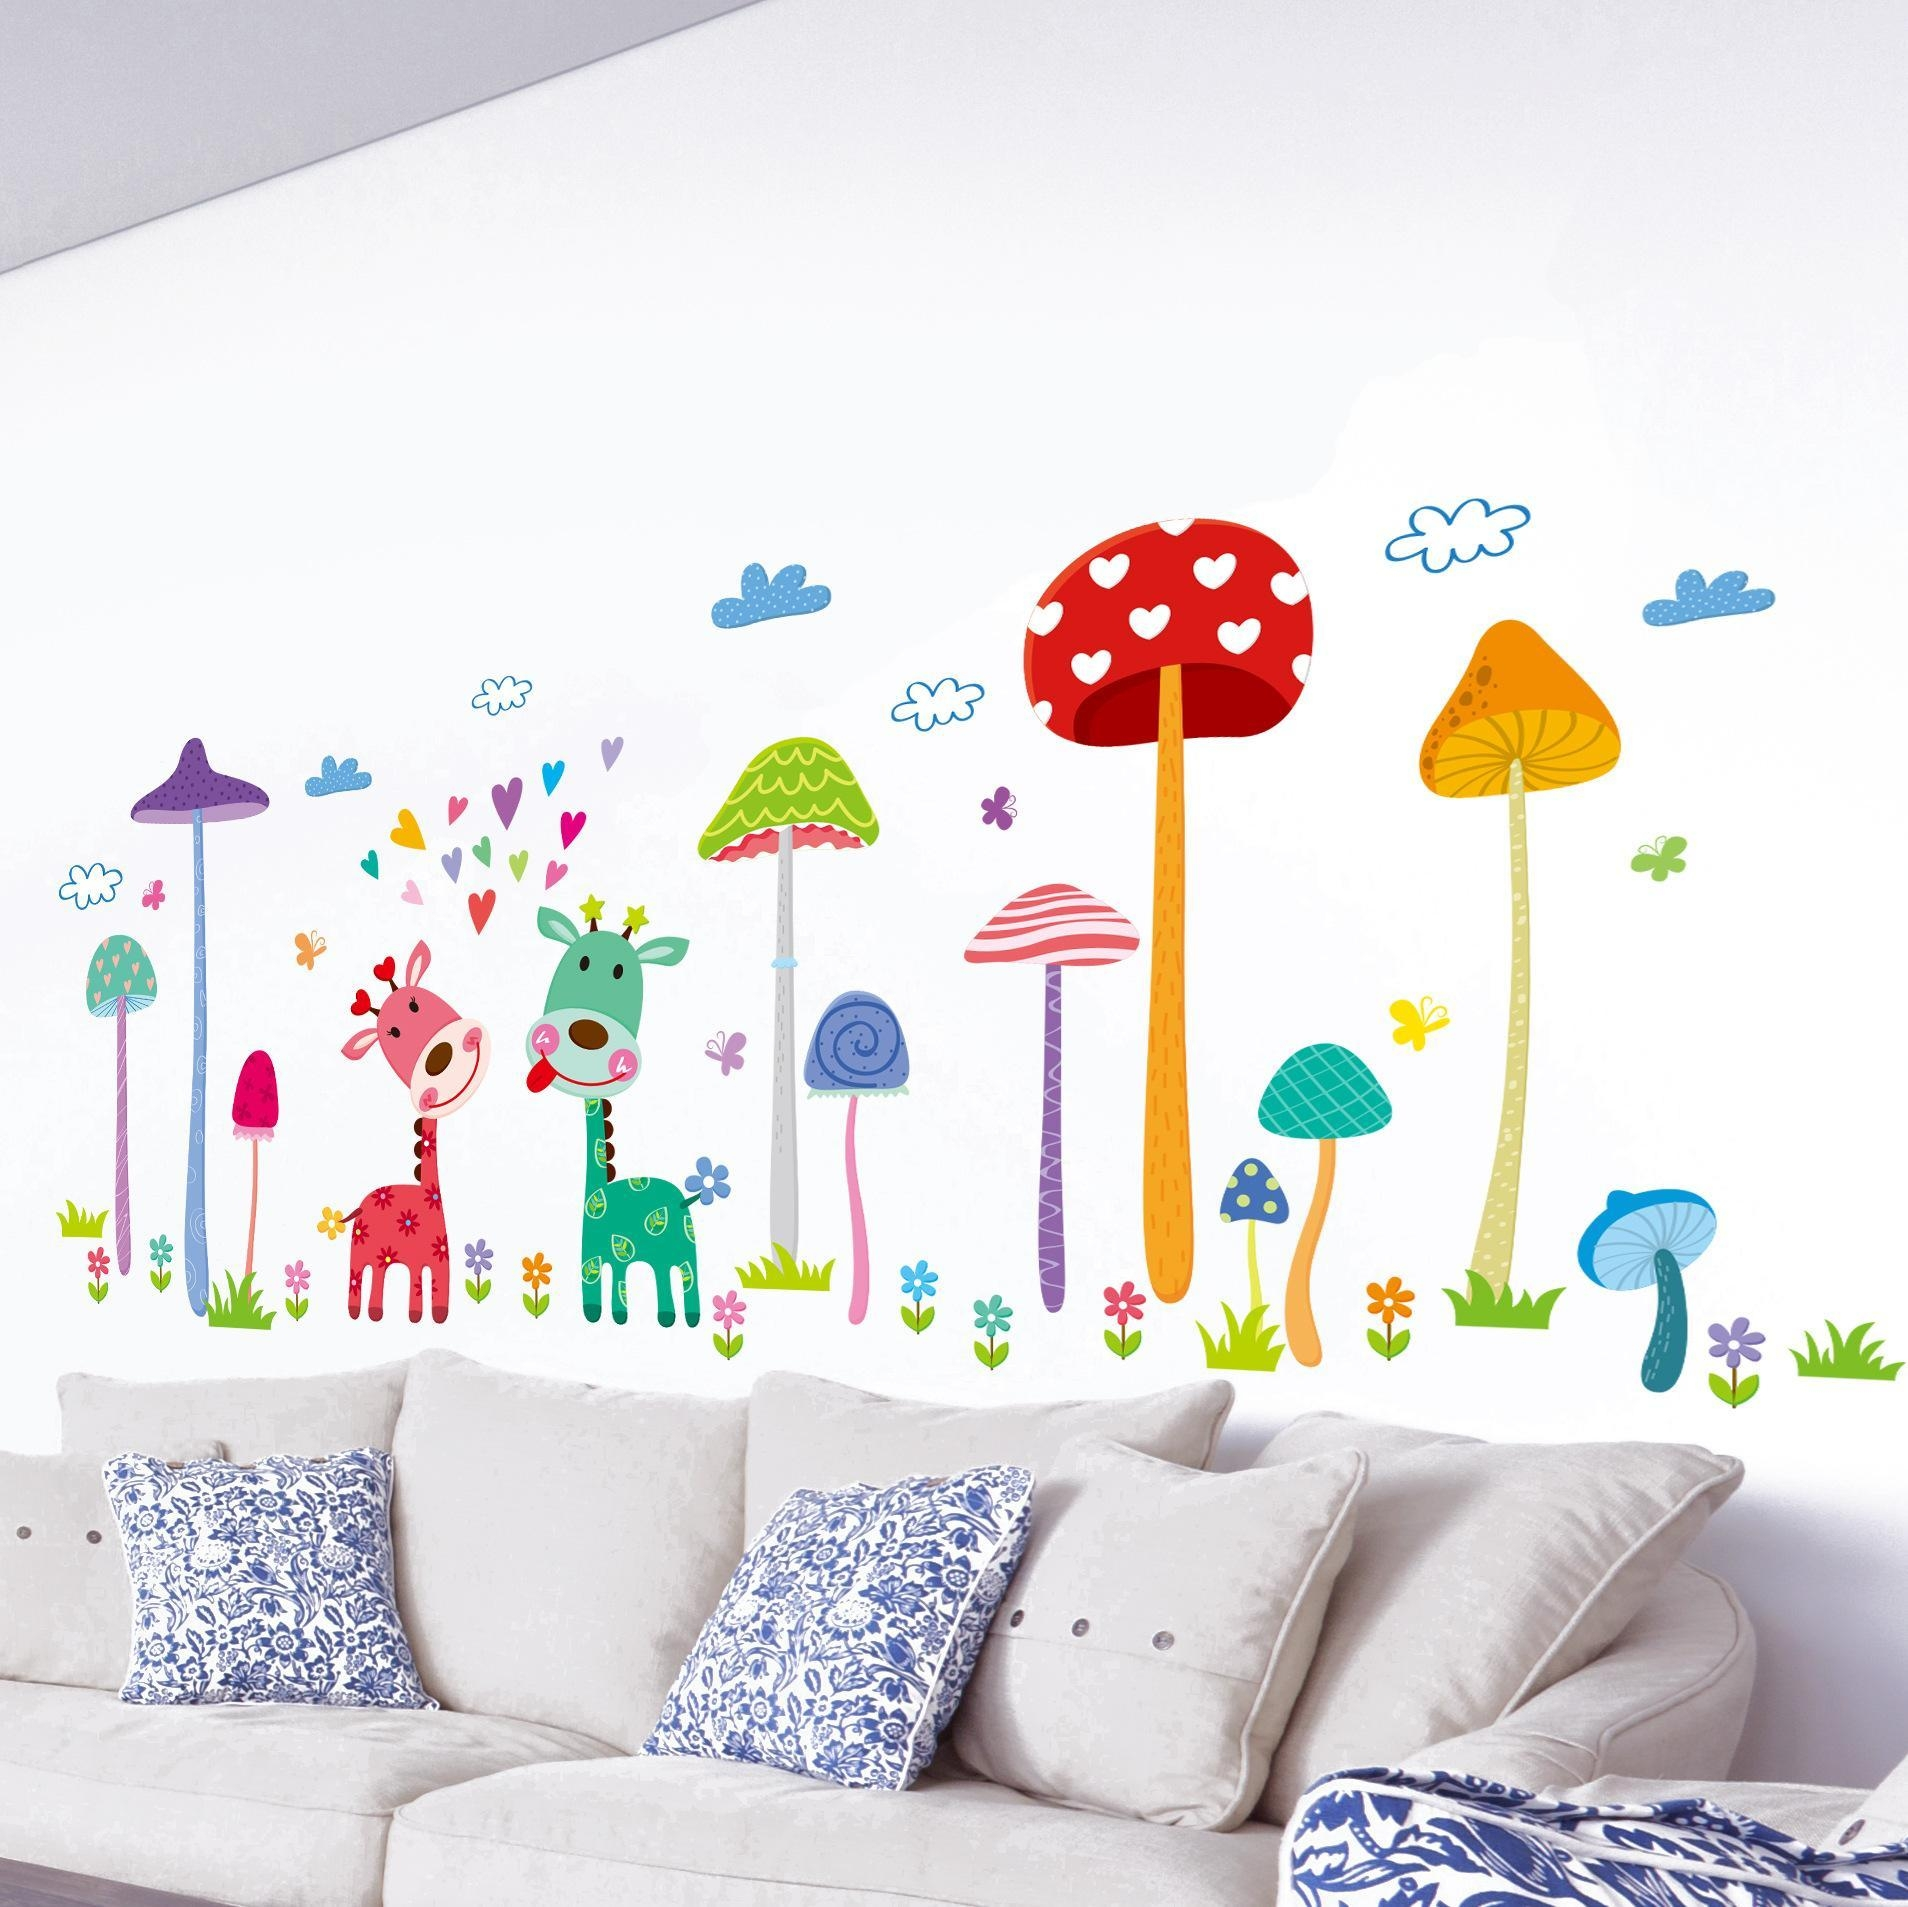 Classroom Decoration Wall Painting ~ Choices of wall art for kindergarten classroom